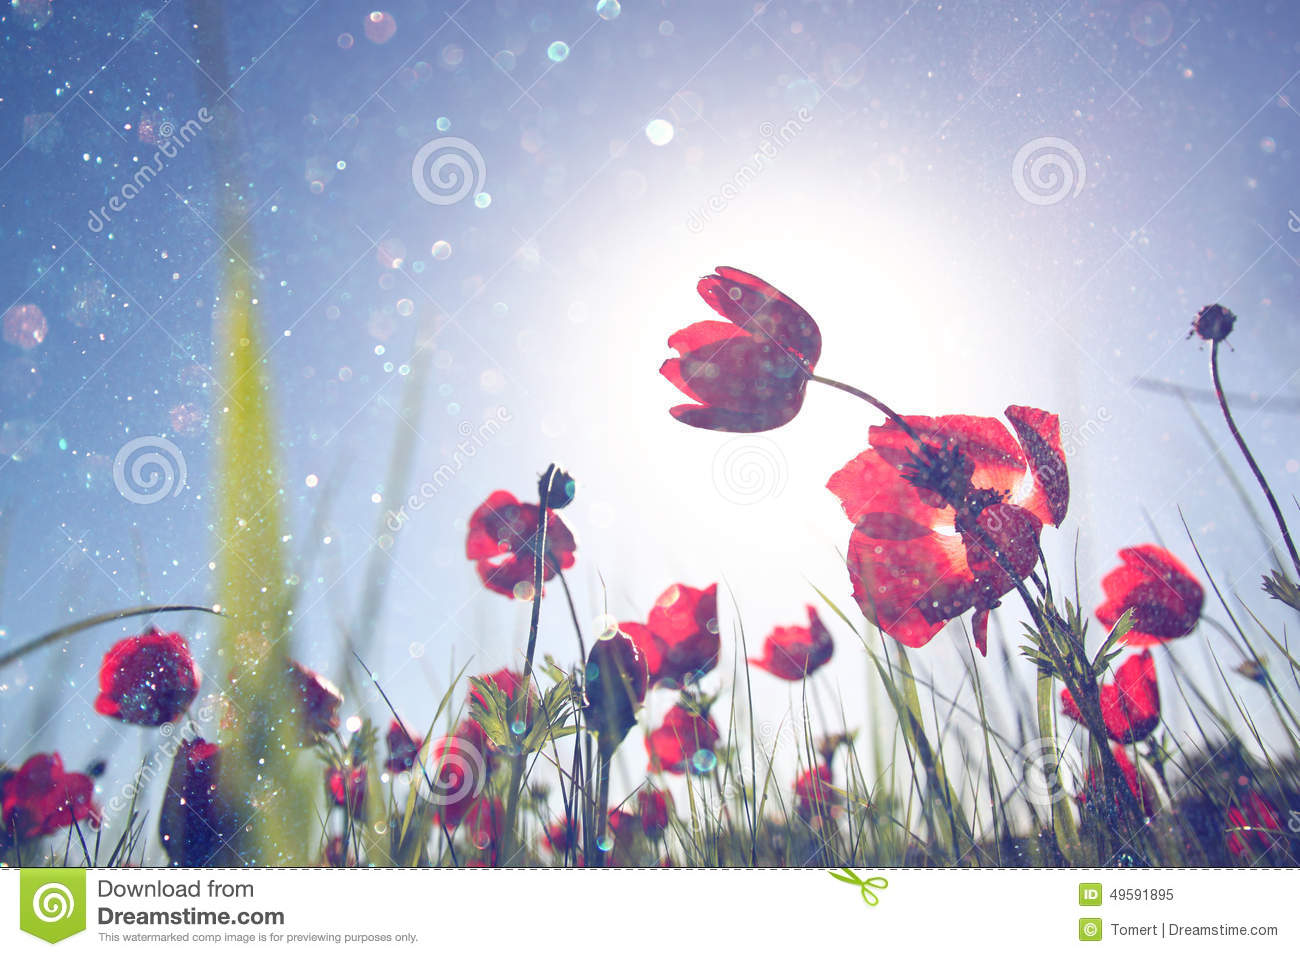 Low angle photo of red poppies against sky with light burst and glitter sparkling lights